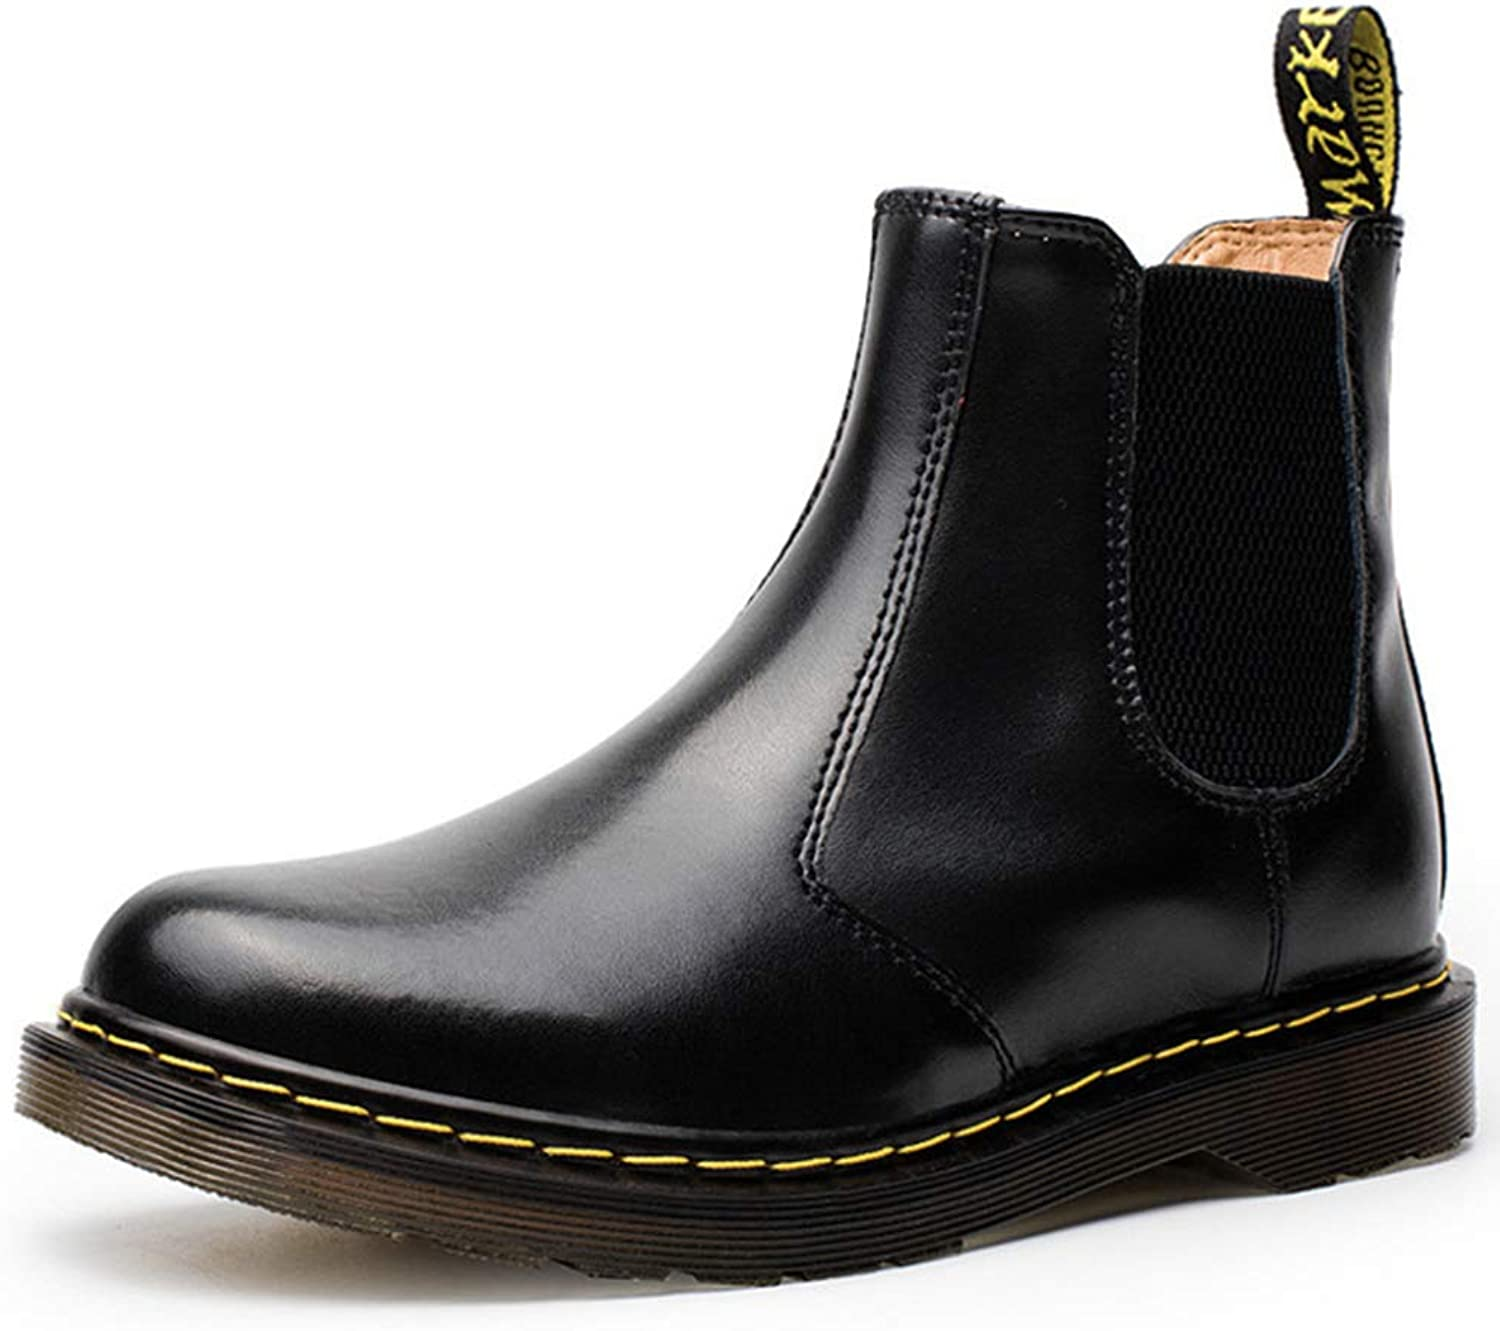 Yra Chelsea Boots Men's Couple Genuine Leather Martin Boots Casual High-tops shoes For Womens Round Toe Ankle Boots 35-44